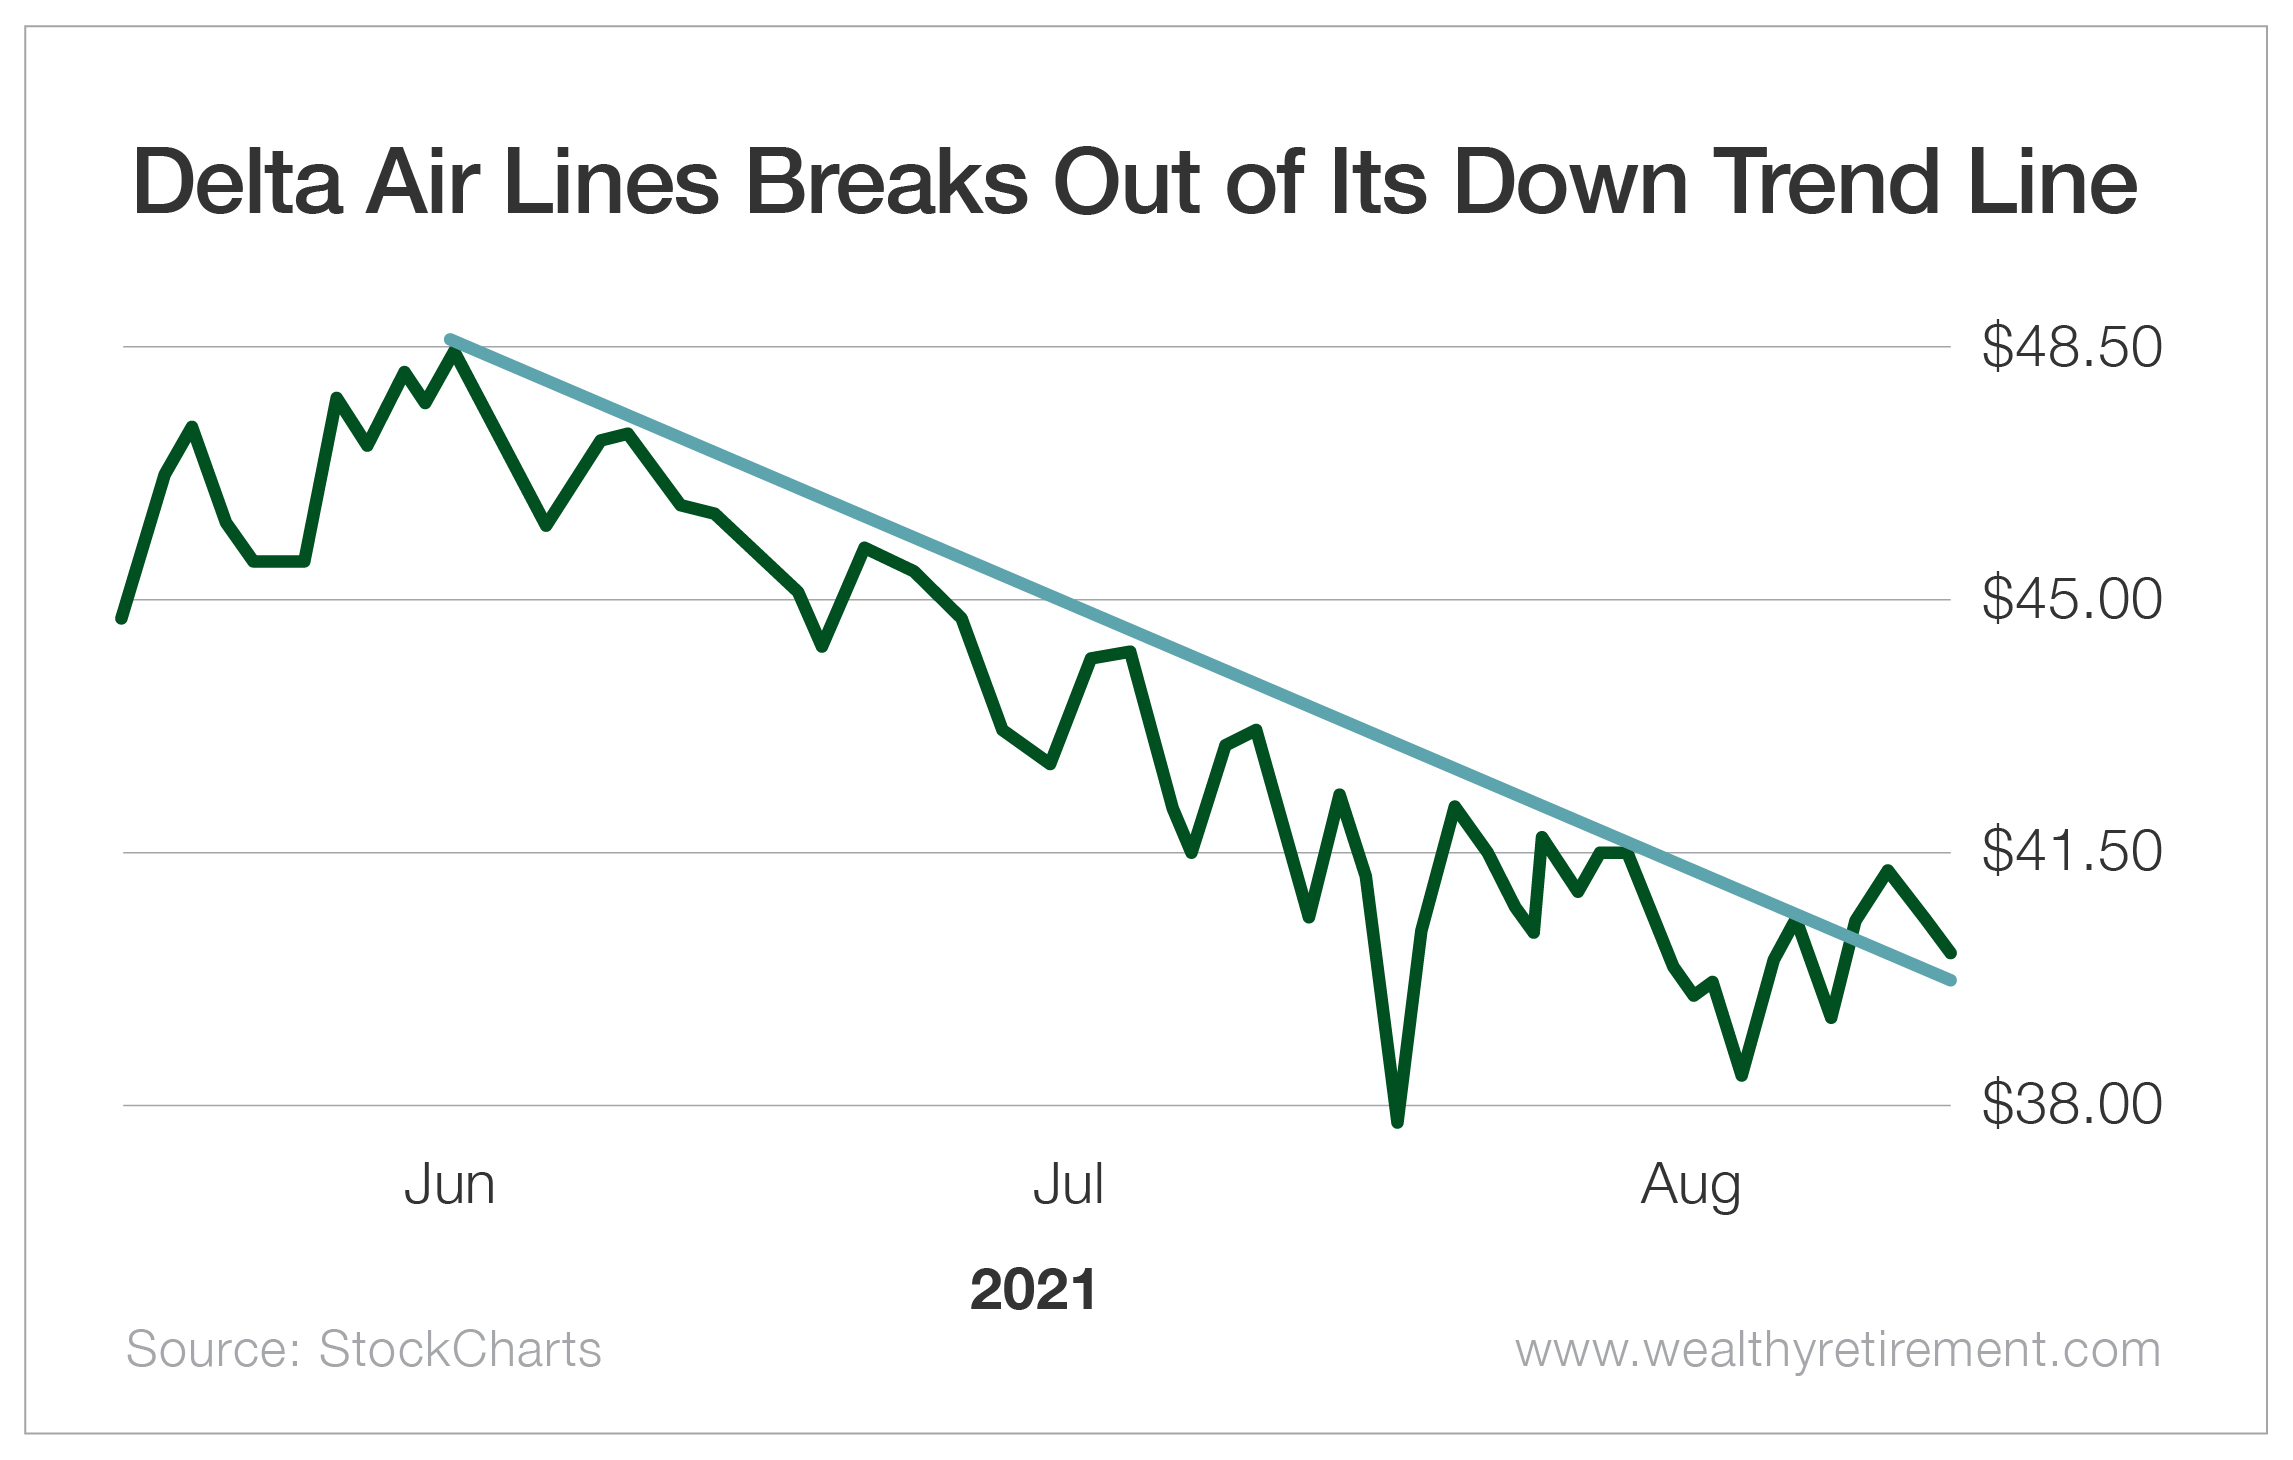 Delta Airlines Breaks Out of Its Down Trendline